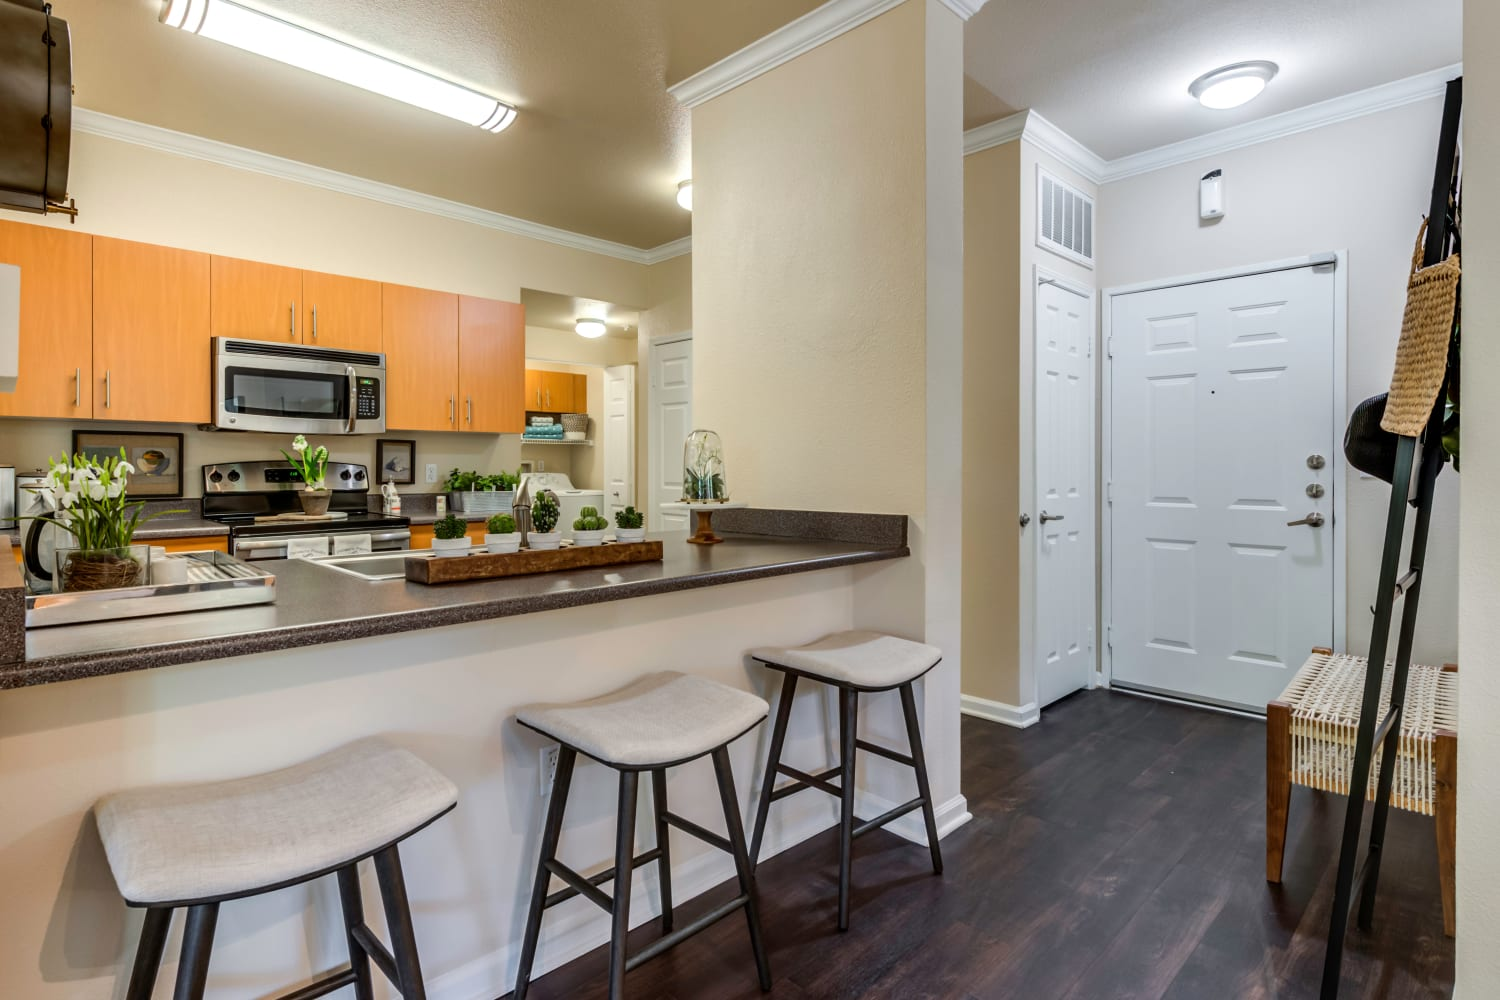 Links at Westridge offers a Kitchen in Valencia, California